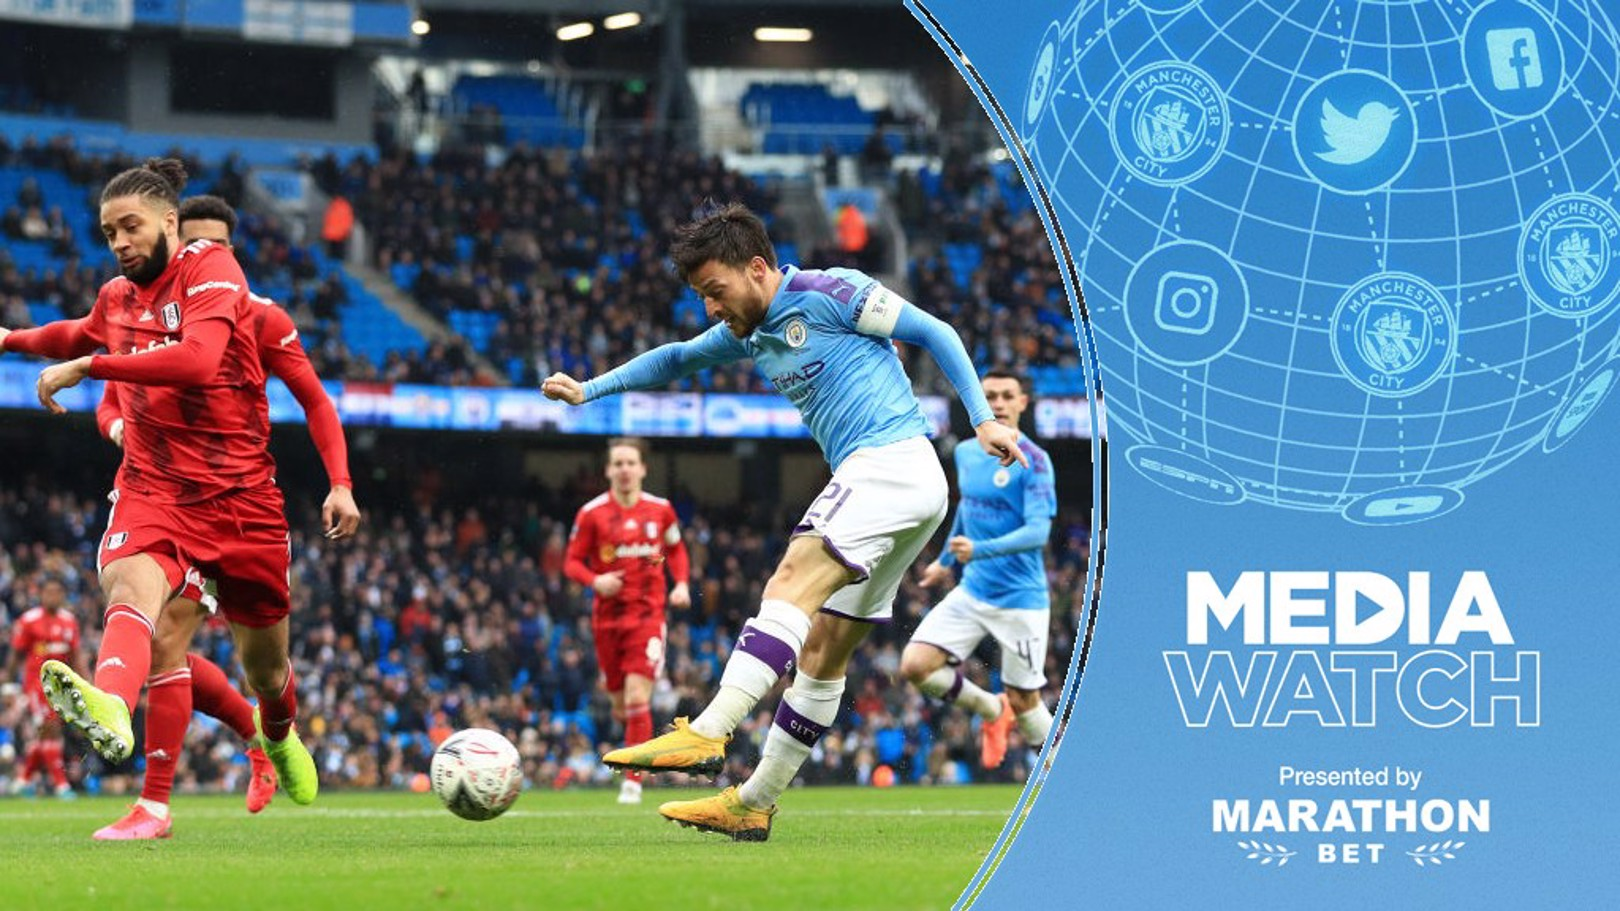 MEDIA WATCH: David Silva was praised for his performance against Fulham.